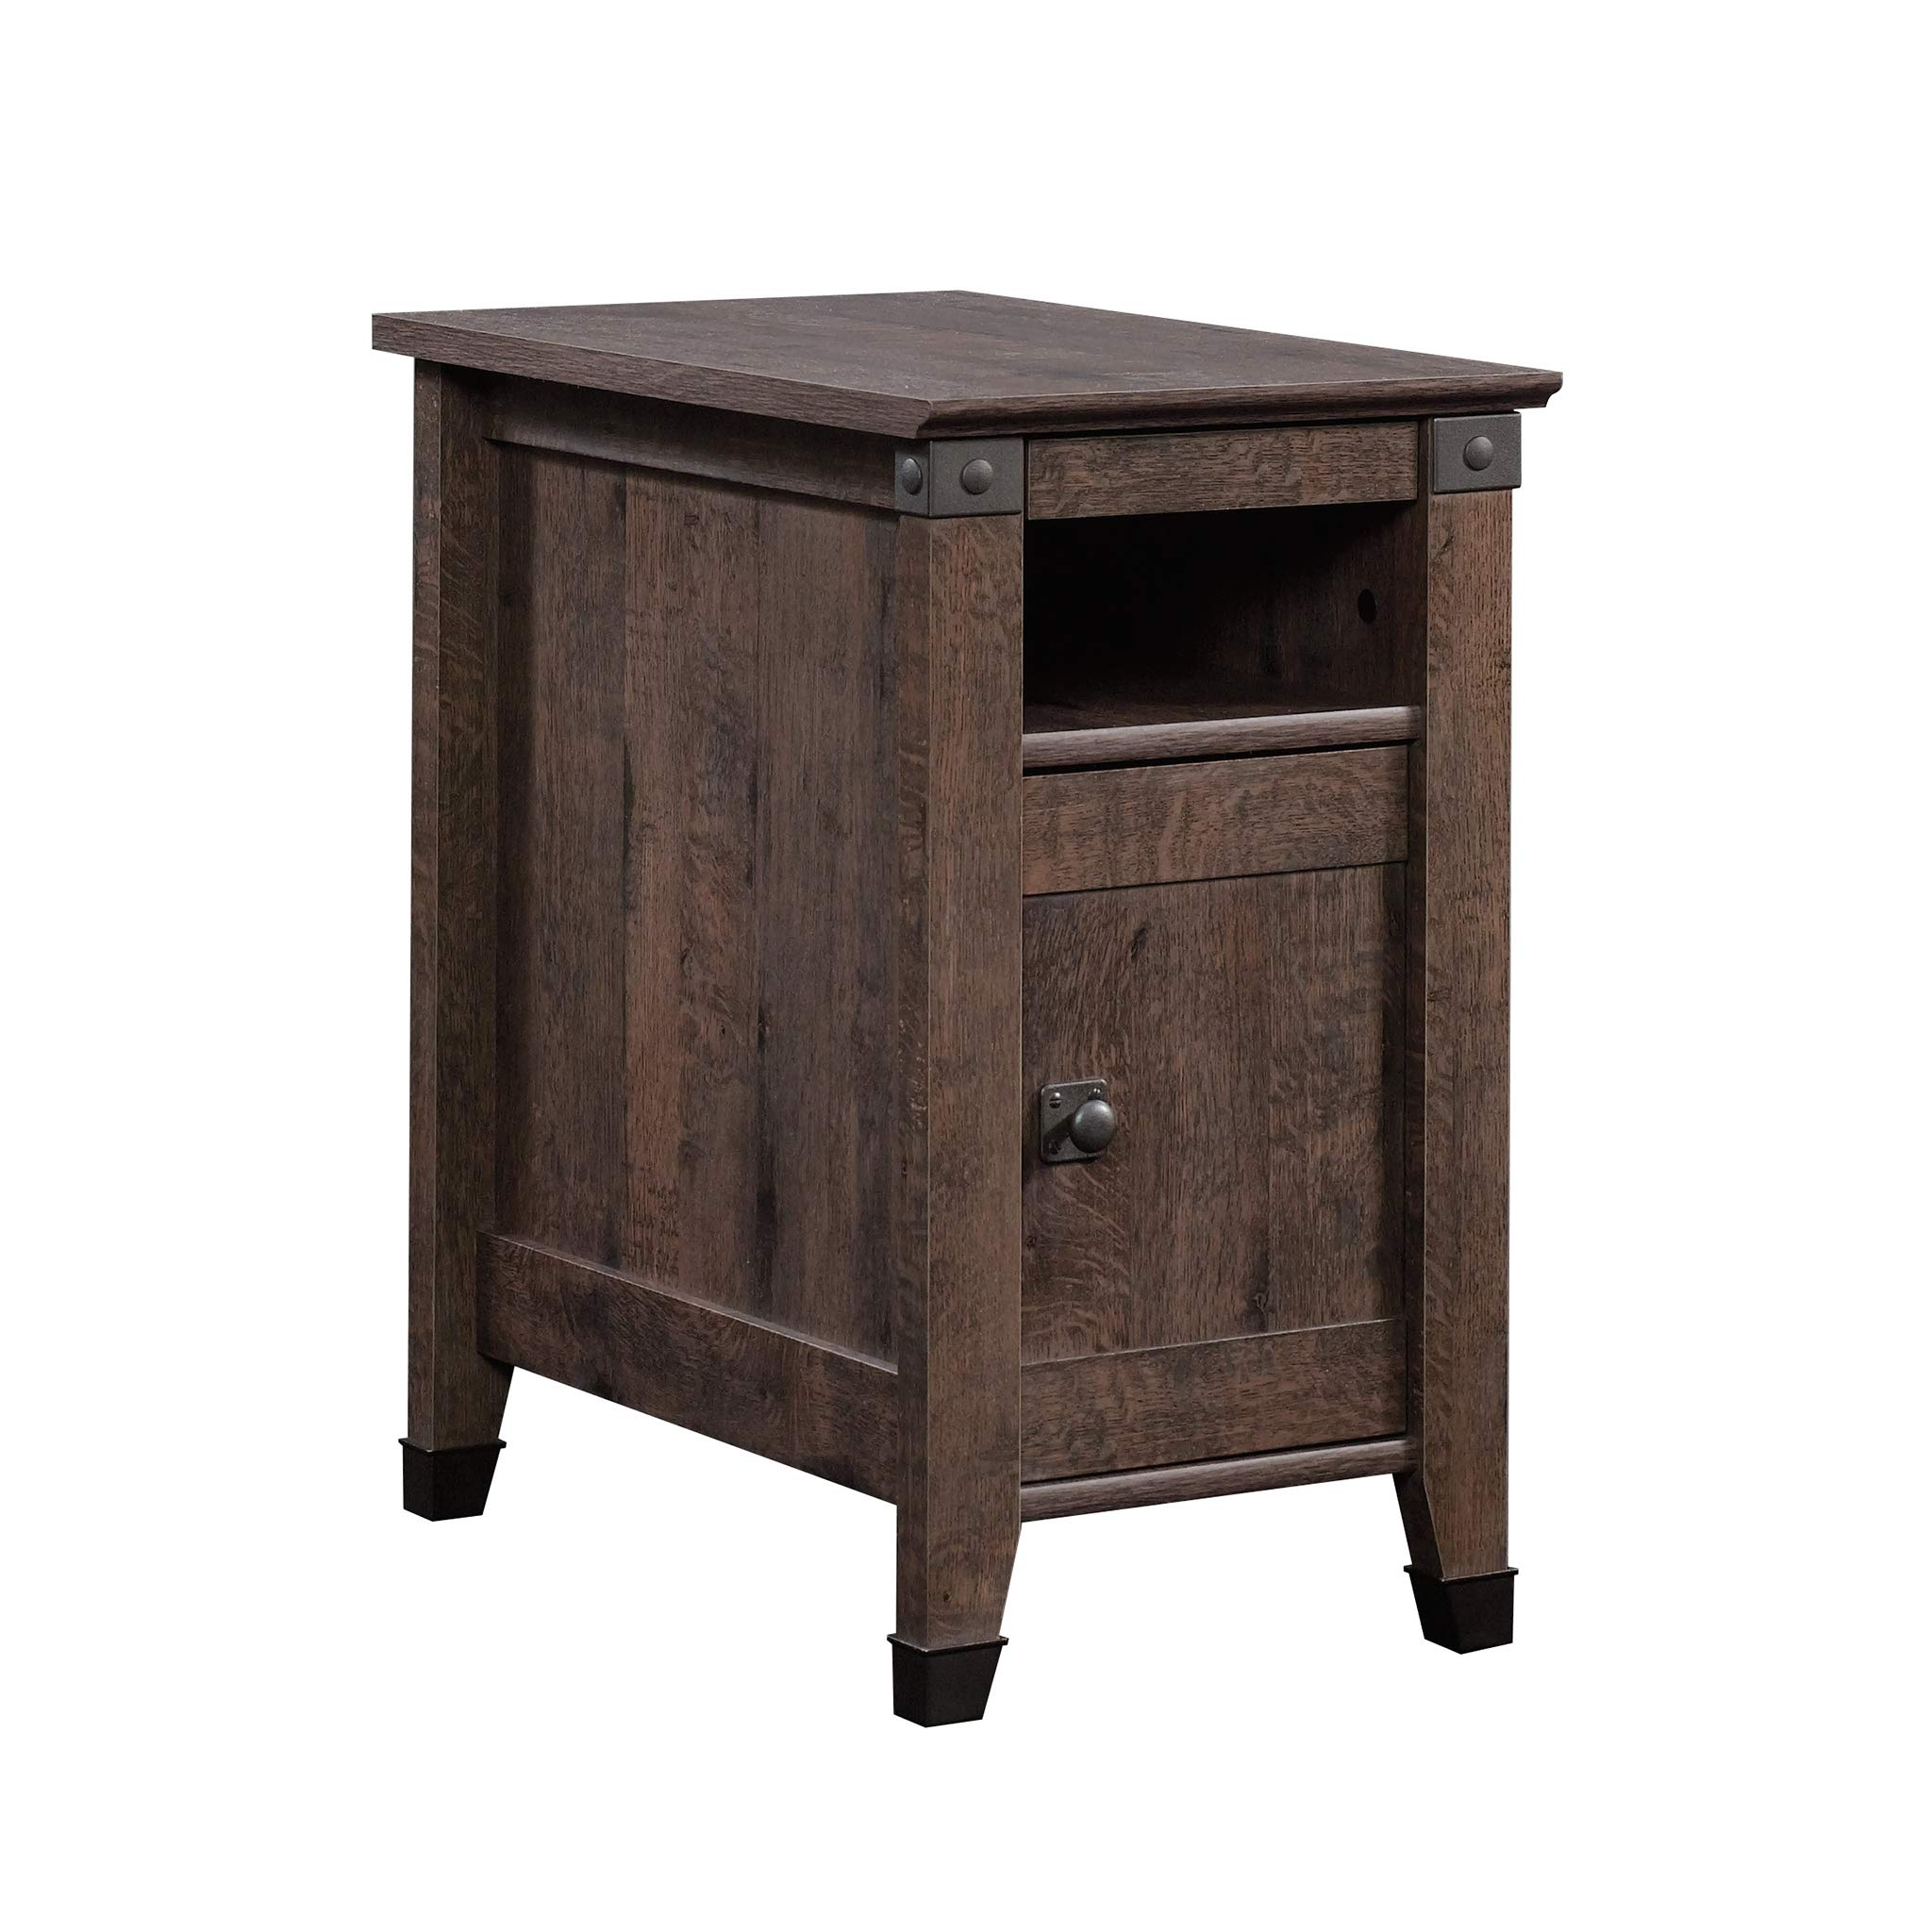 Sauder 420422 Carson Forge Side Table, L: 14.17'' x W: 22.44'' x H: 24.61'', Coffee Oak finish by Sauder